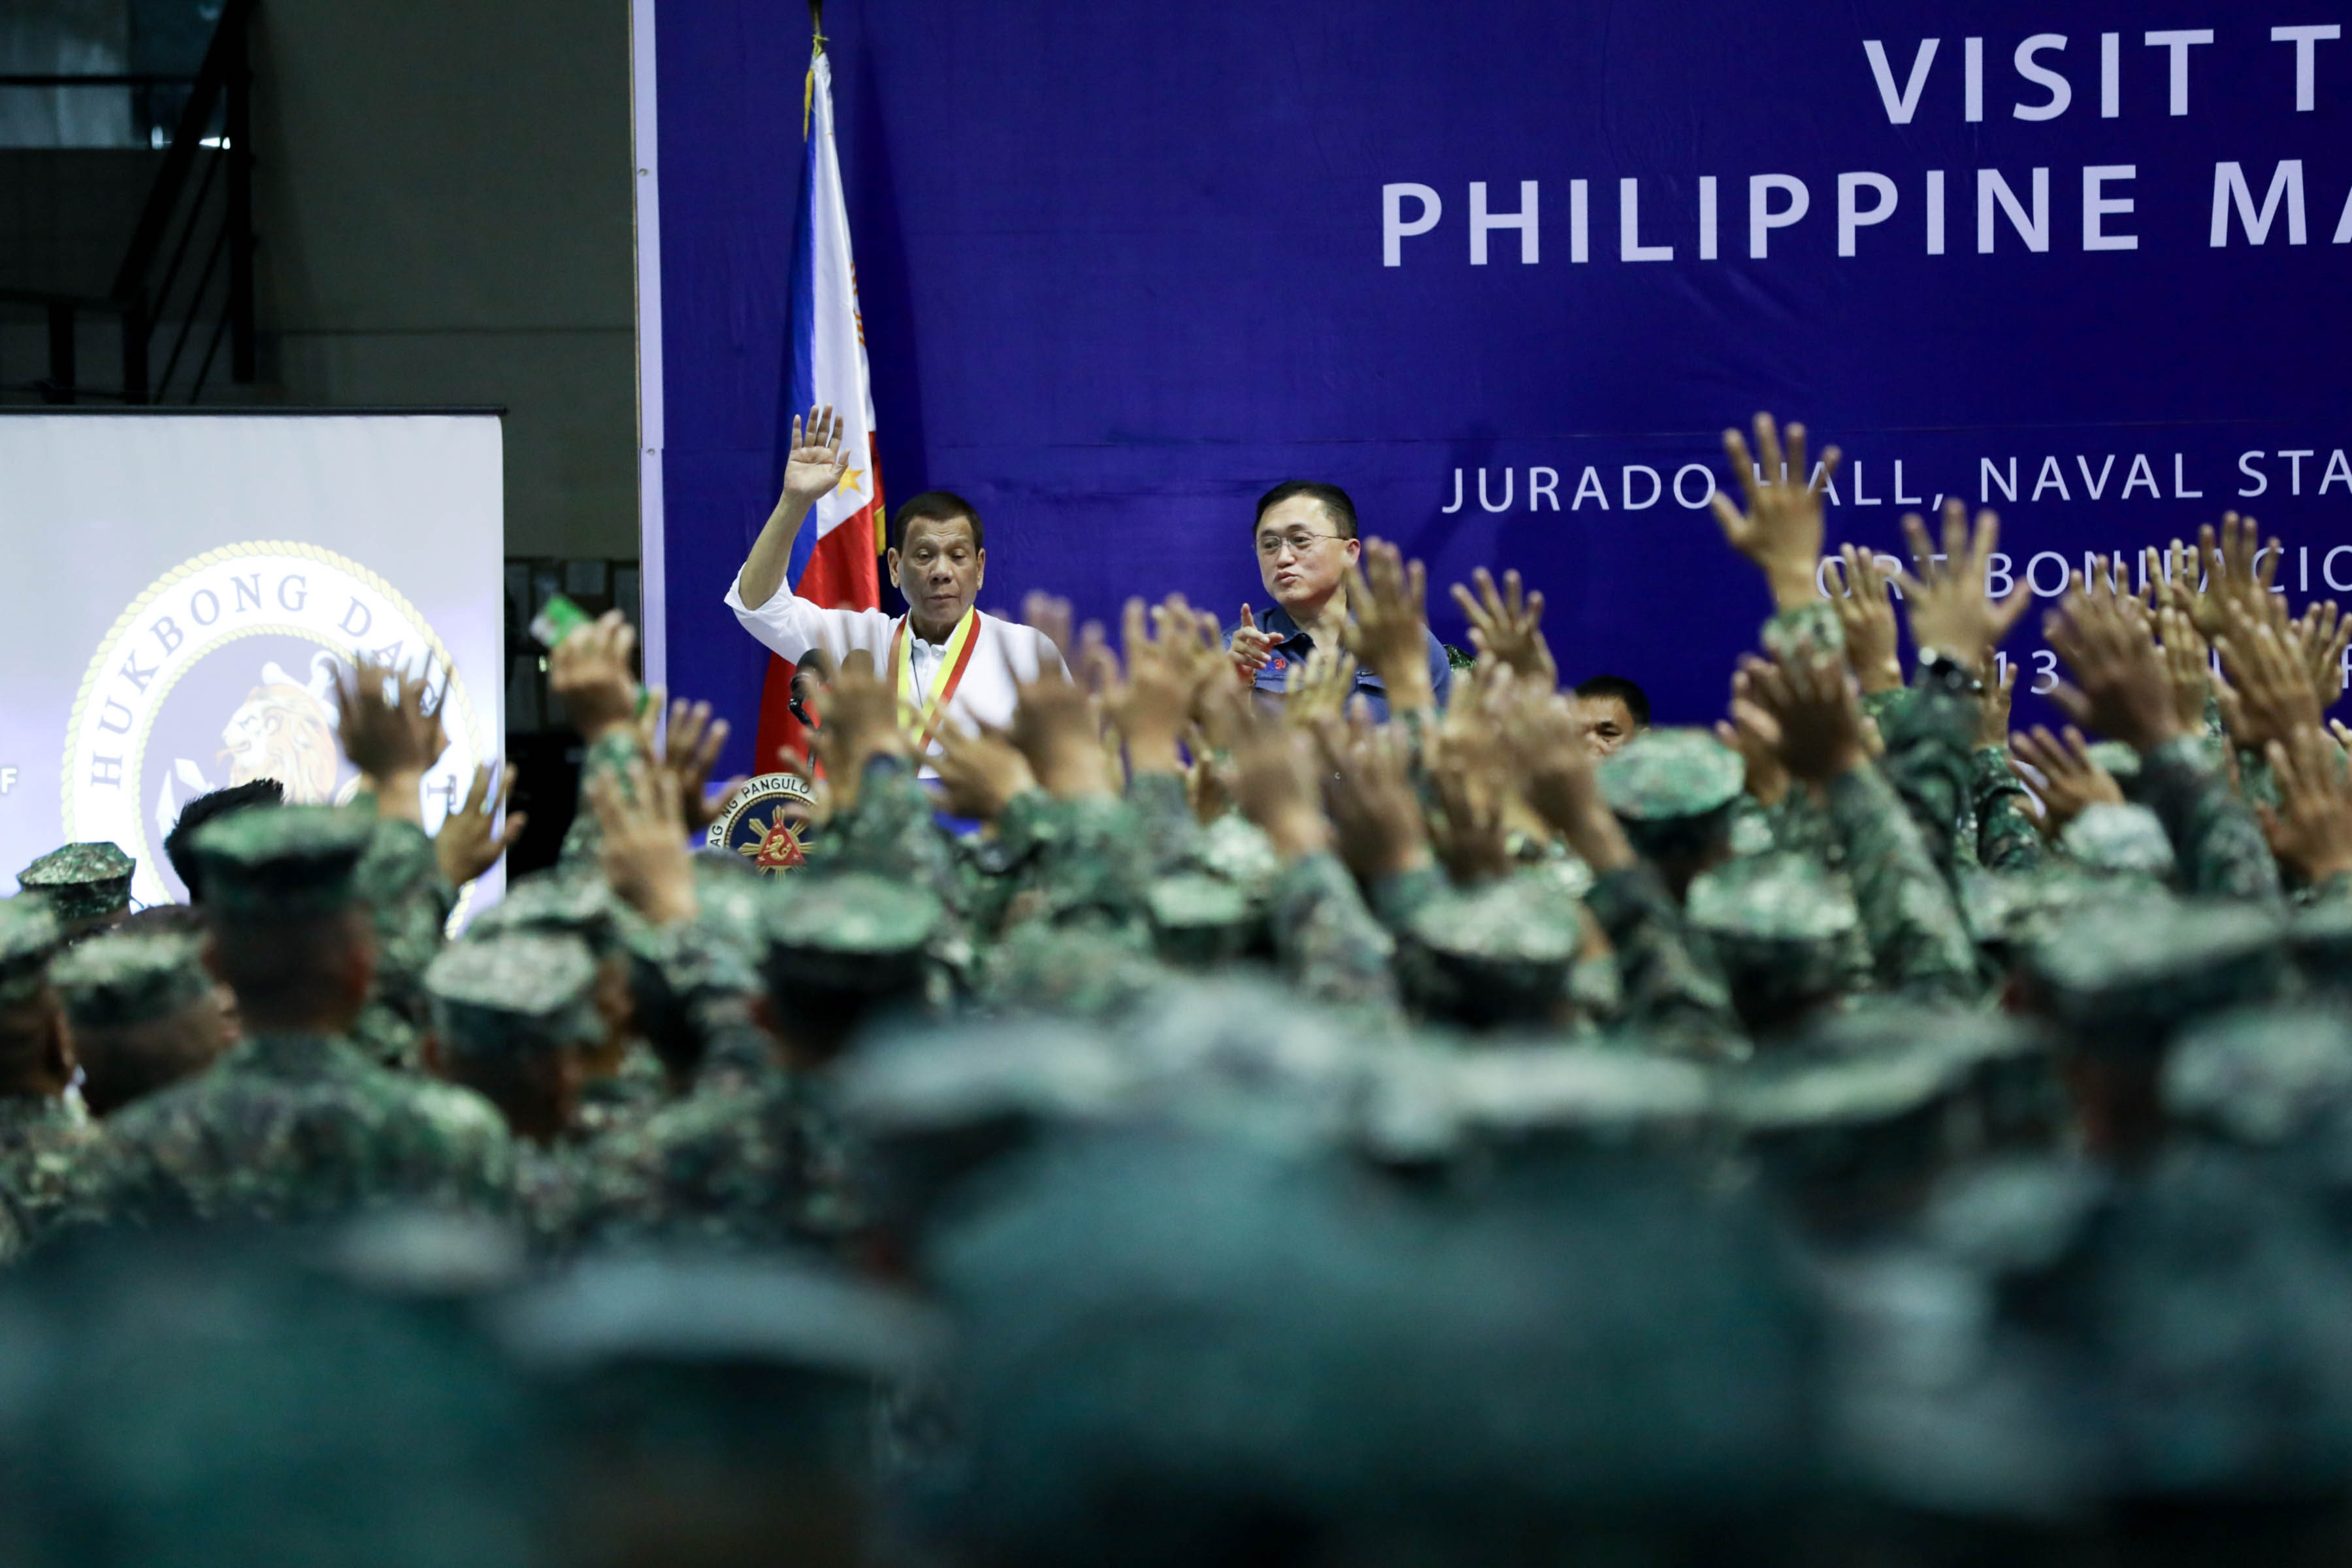 PH SOLDIERS. President Rodrigo Duterte delivers a speech during his visit to the Philippine Marine Corps headquarters at Fort Bonifacio in Taguig City on January 13, 2020. Malacau00f1ang photo